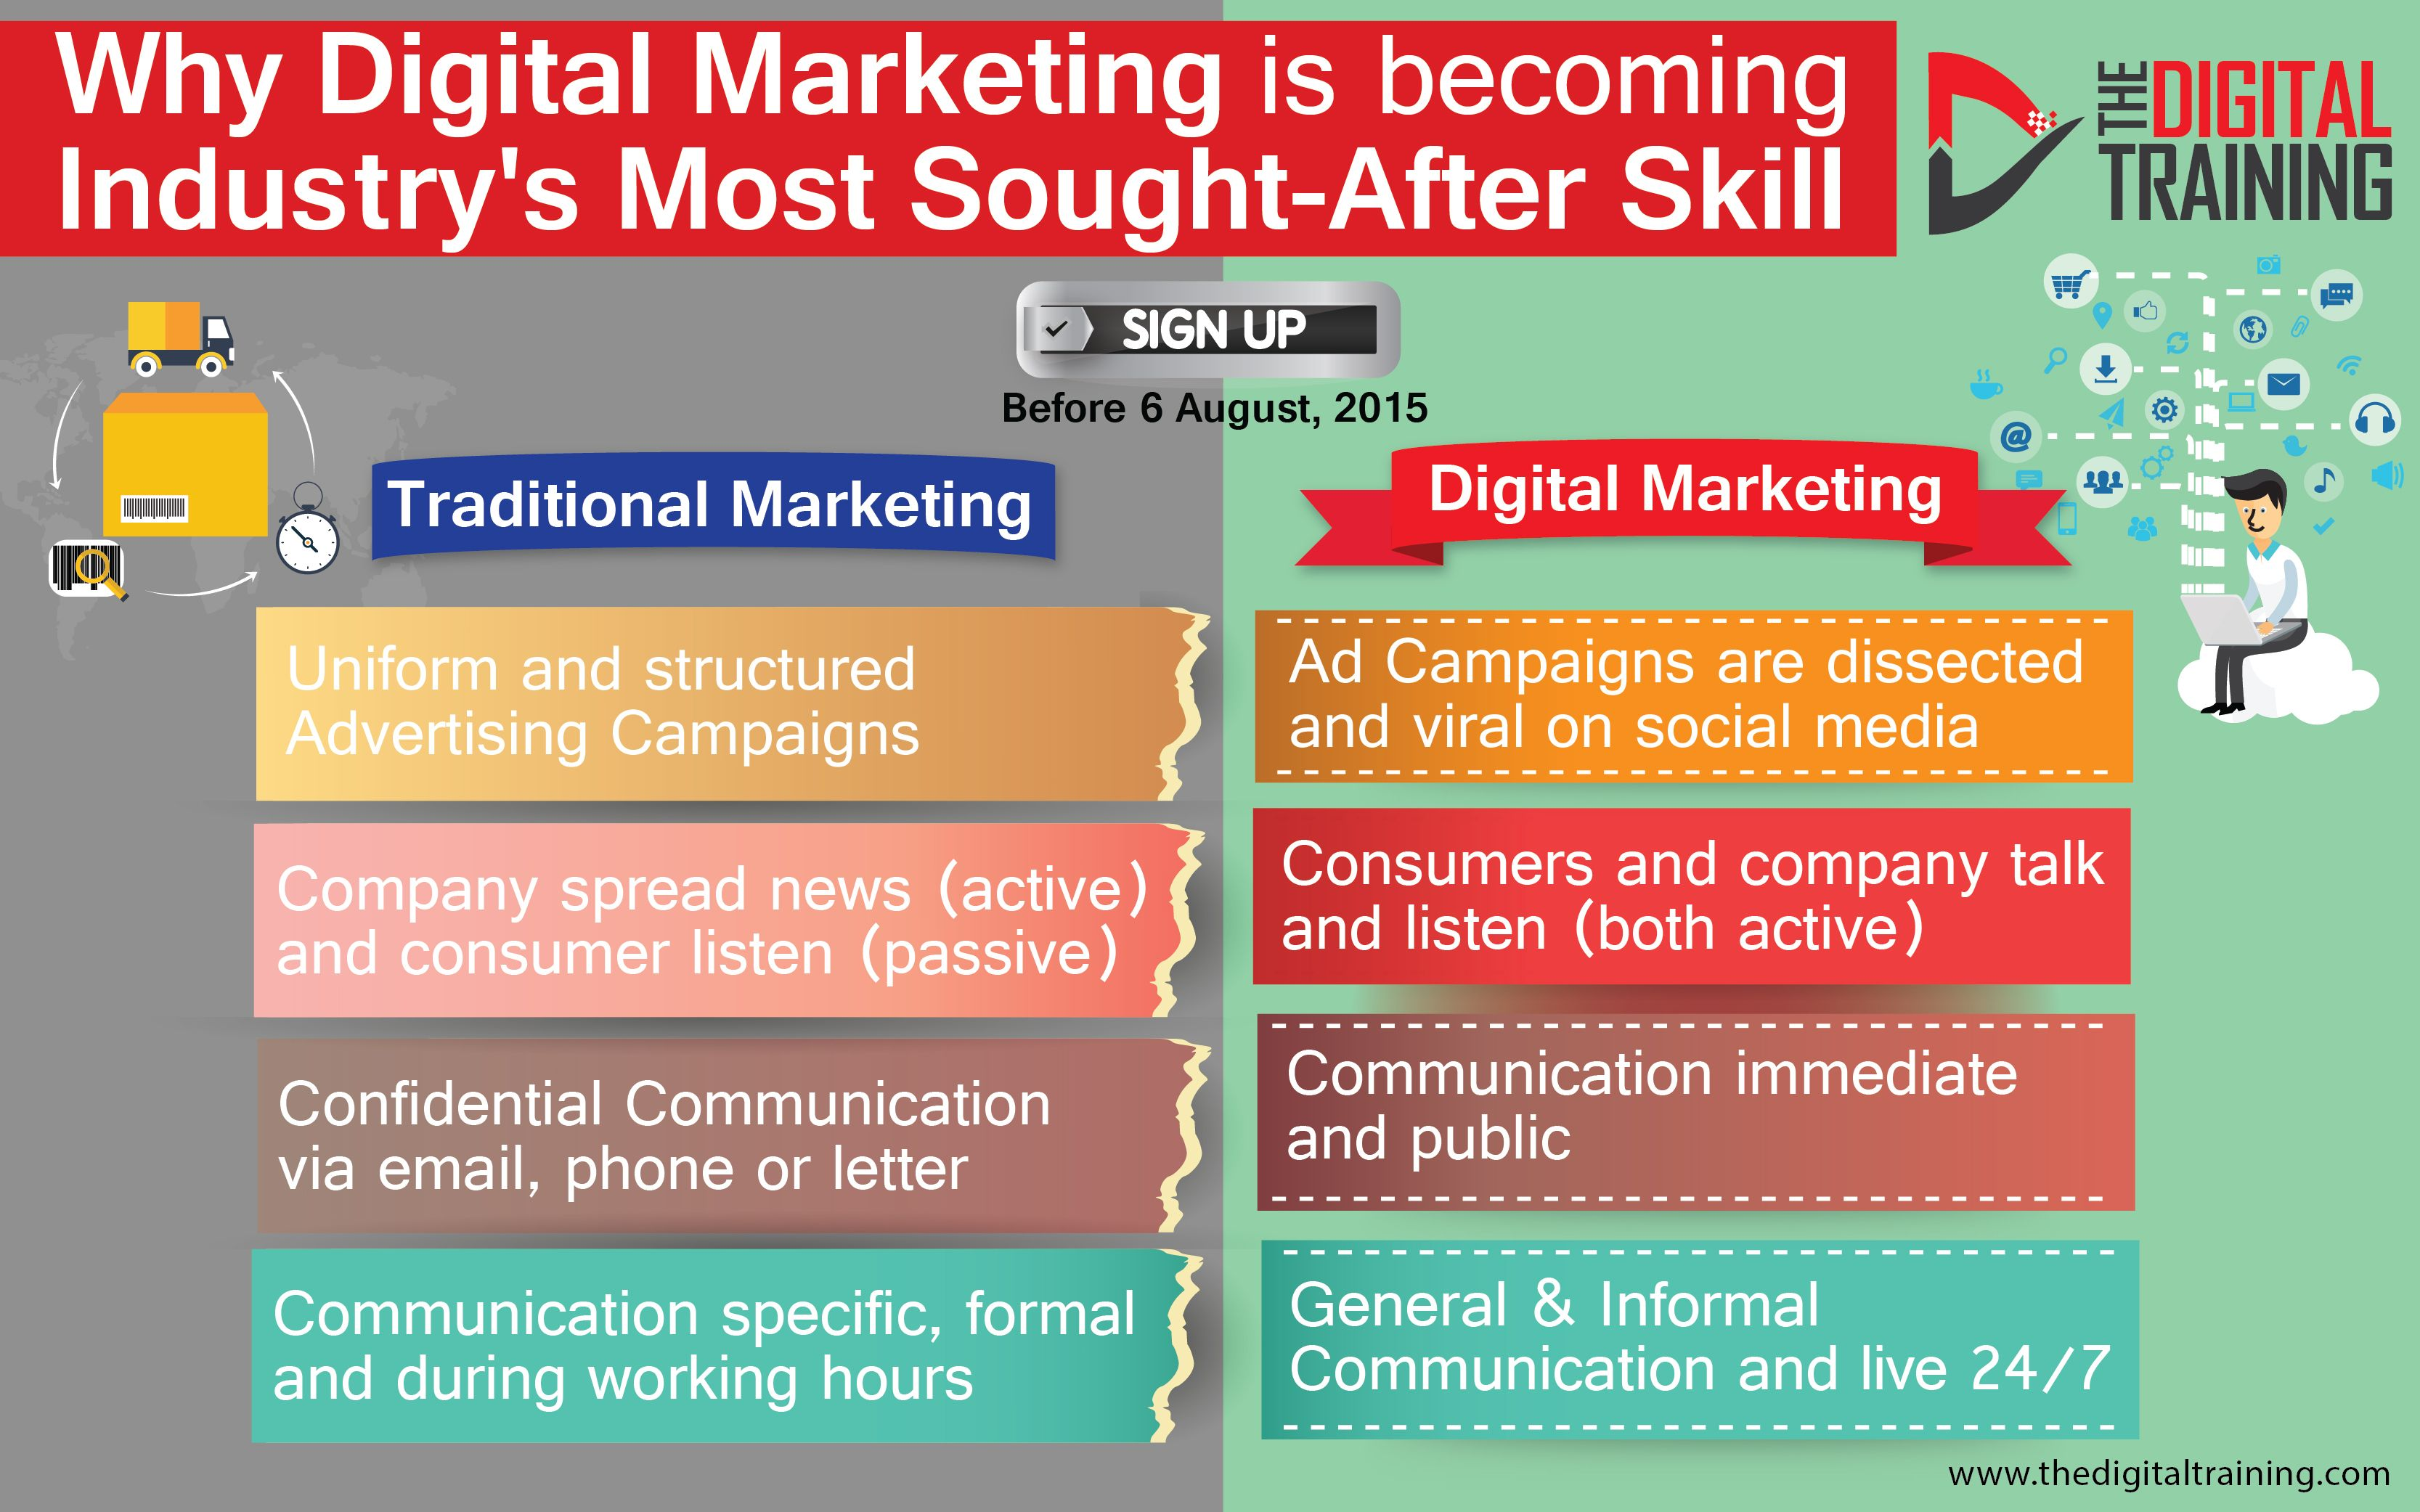 It's #Digital era! To keep up with the fast-paced world, Let's see how Digital #Marketing is taking over the #Traditional Marketing. Sign up today! Visit www.thedigitaltraining.com